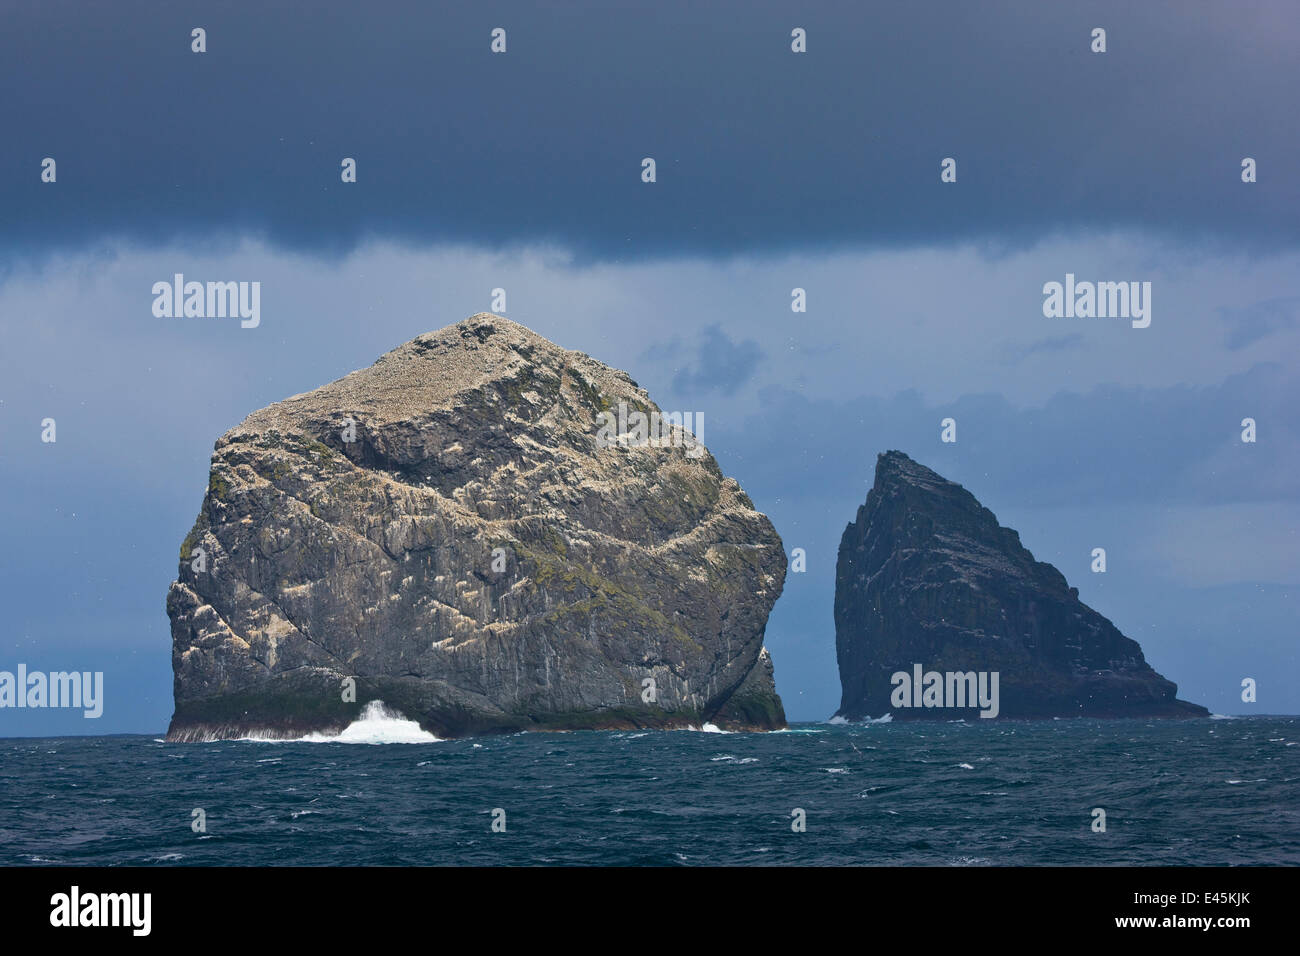 Stac Lee and Stac an Armin, home to Northern gannet (Morus bassanus) colonies, St. Kilda Archipielago, Outer Hebrides, - Stock Image